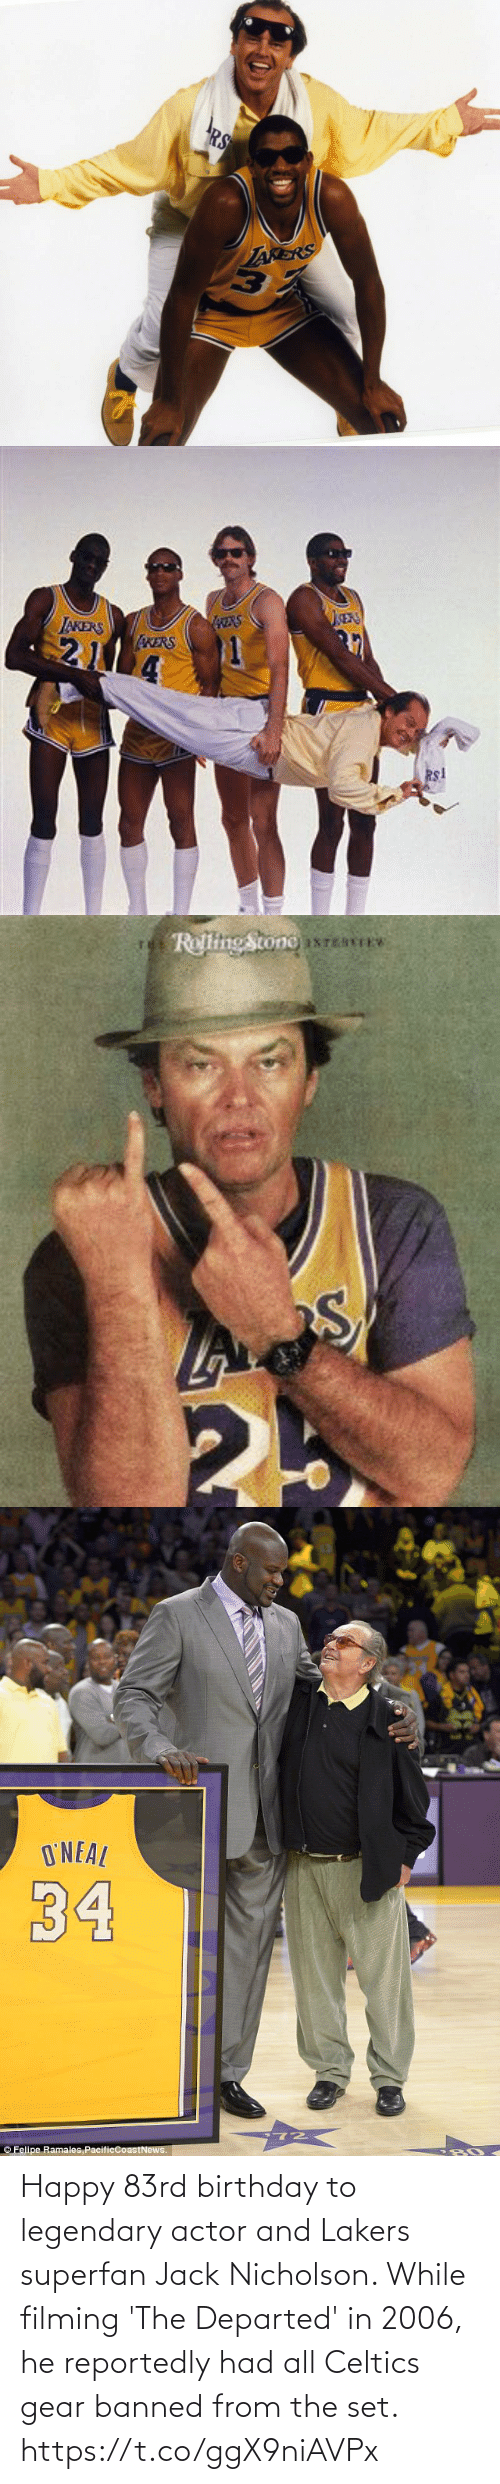 actor: Happy 83rd birthday to legendary actor and Lakers superfan Jack Nicholson.   While filming 'The Departed' in 2006, he reportedly had all Celtics gear banned from the set. https://t.co/ggX9niAVPx